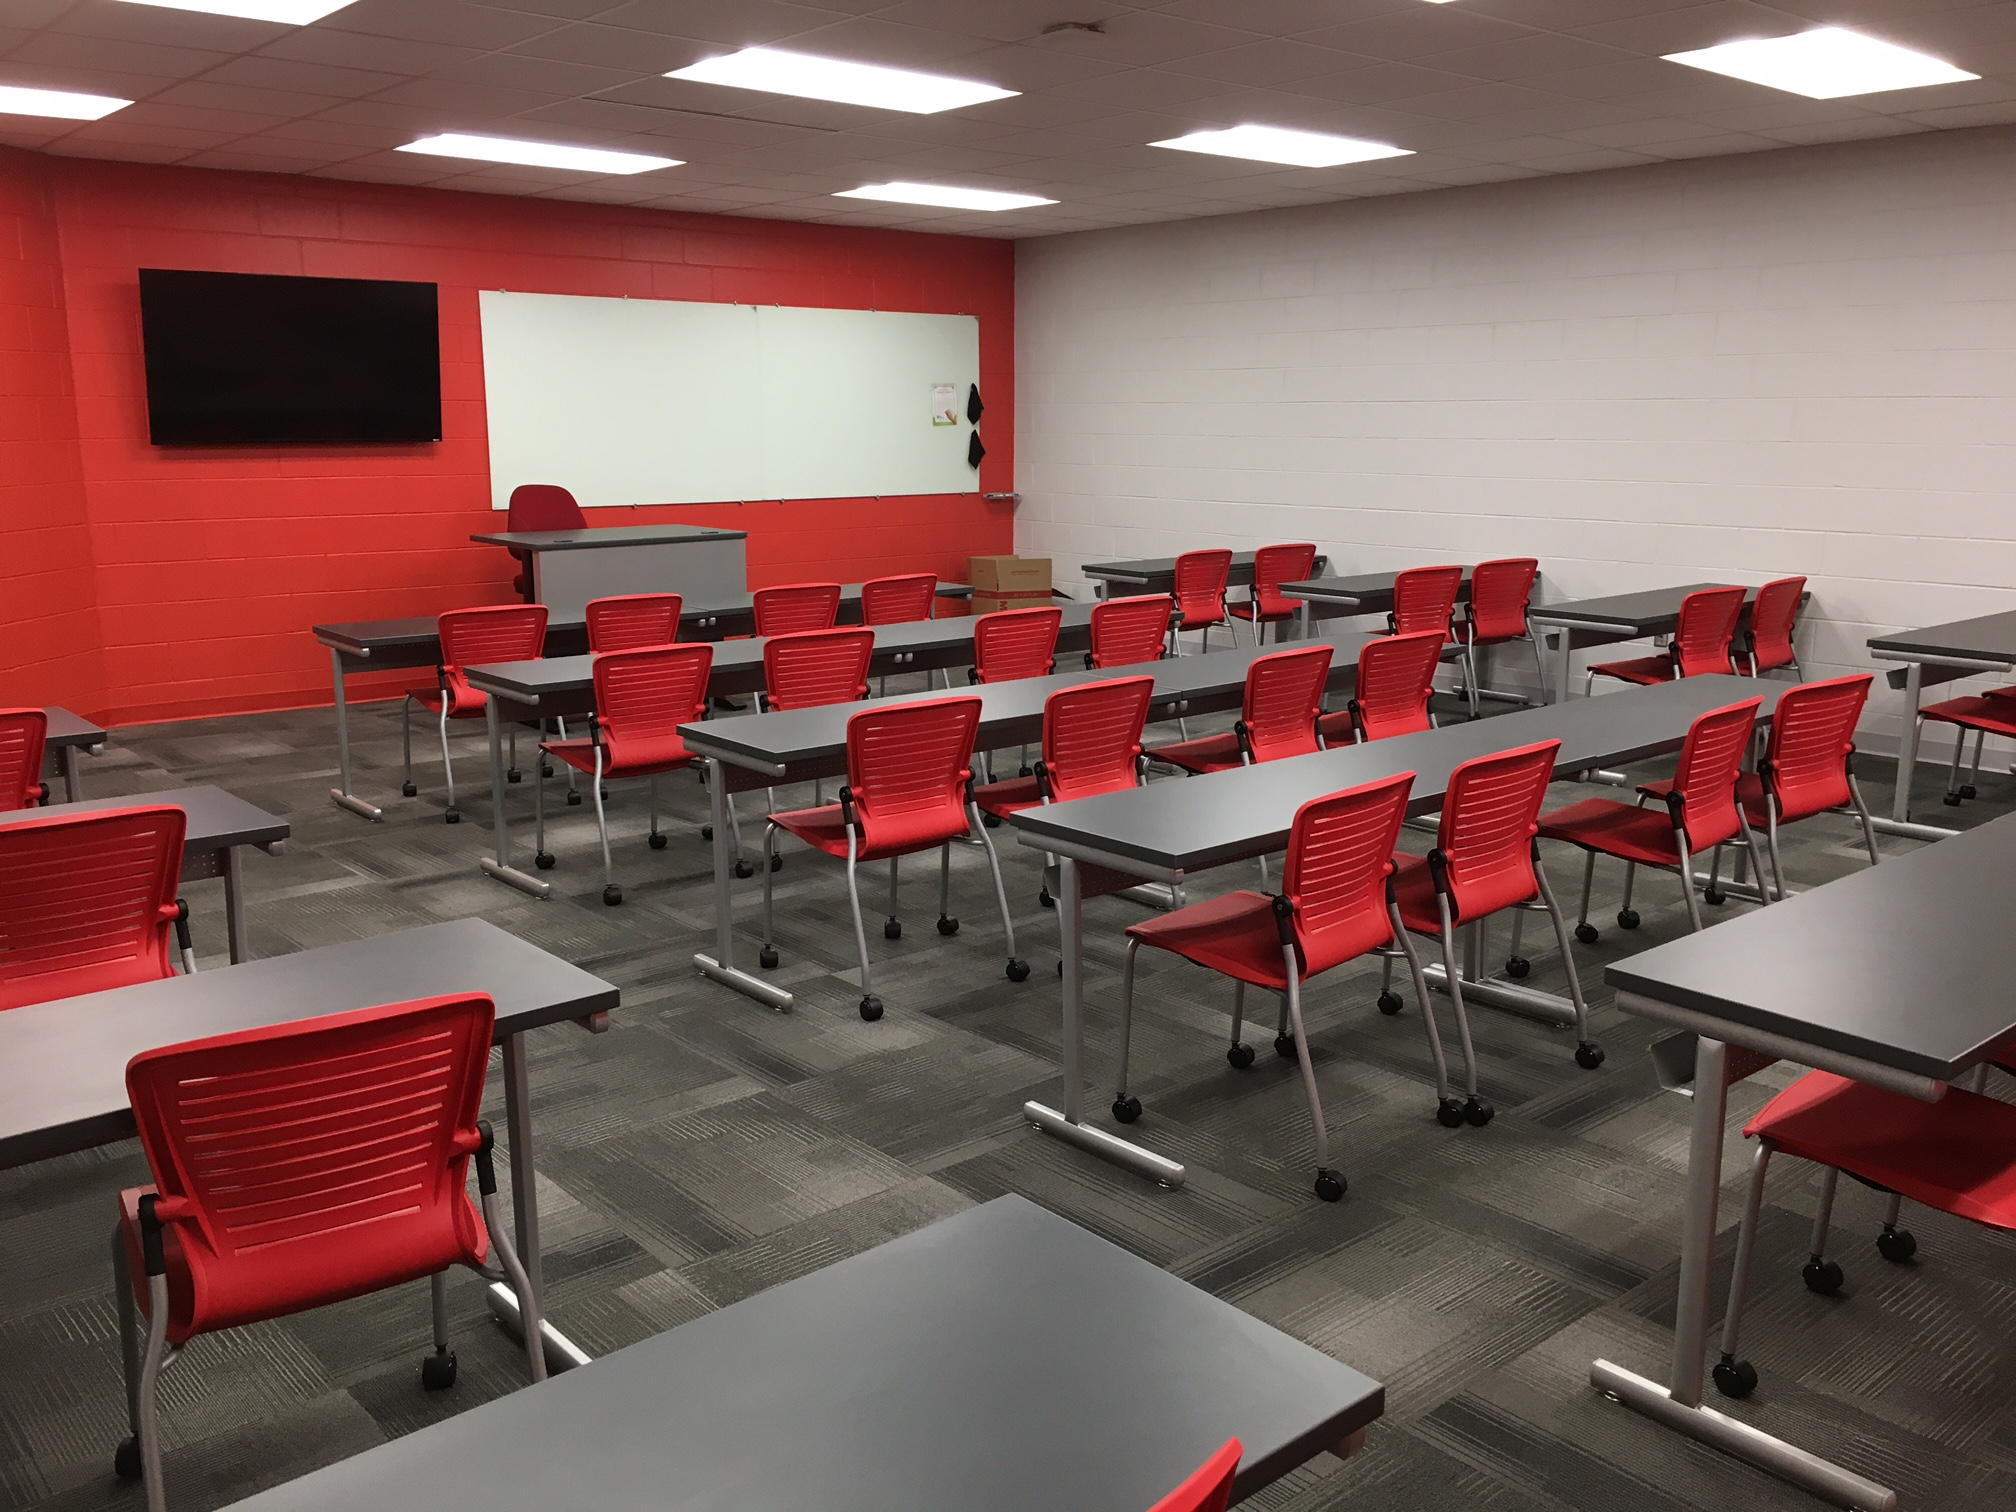 Jacksonville State University - Active Learning Table Install Pic 6.JPG